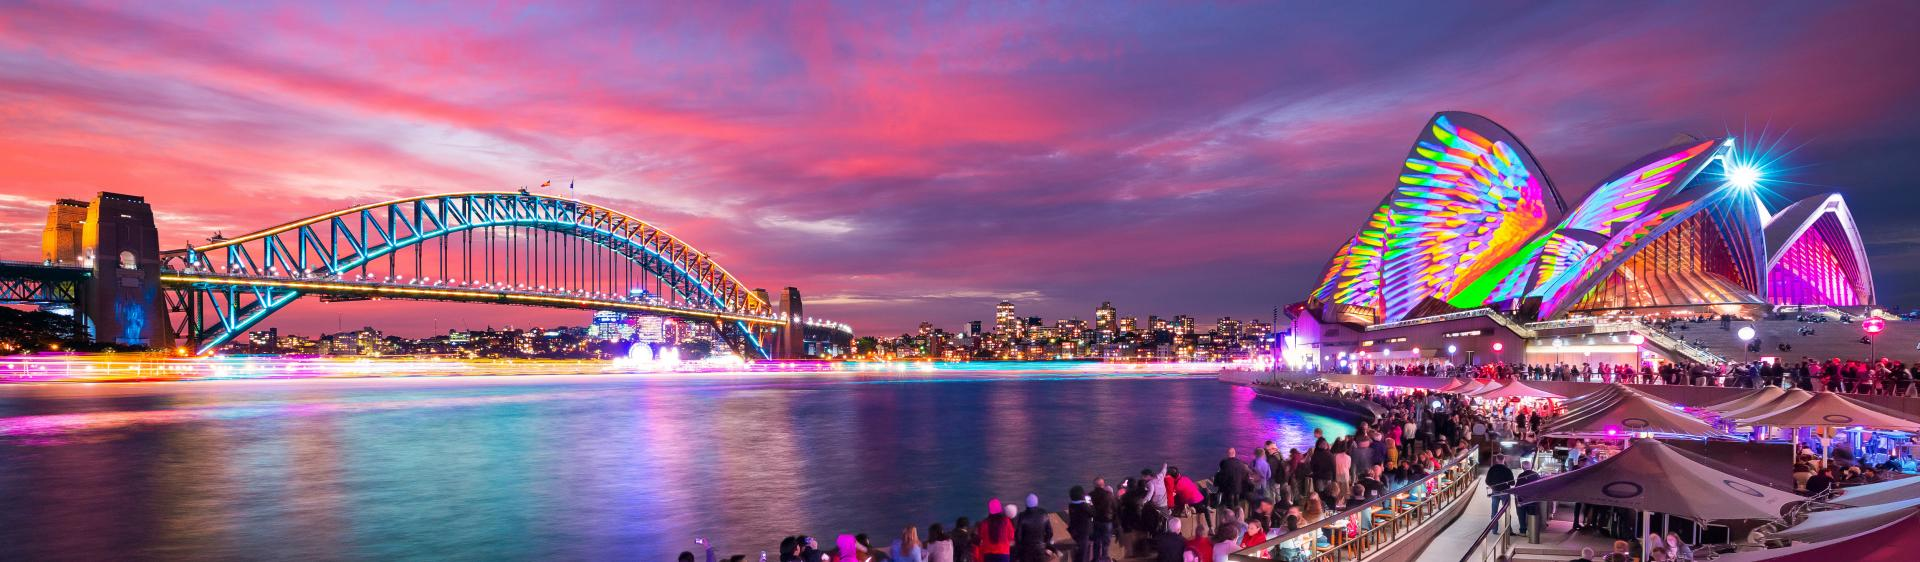 Patrons at Opera Bar enjoying the sunset and light projections during Vivid Sydney 2018